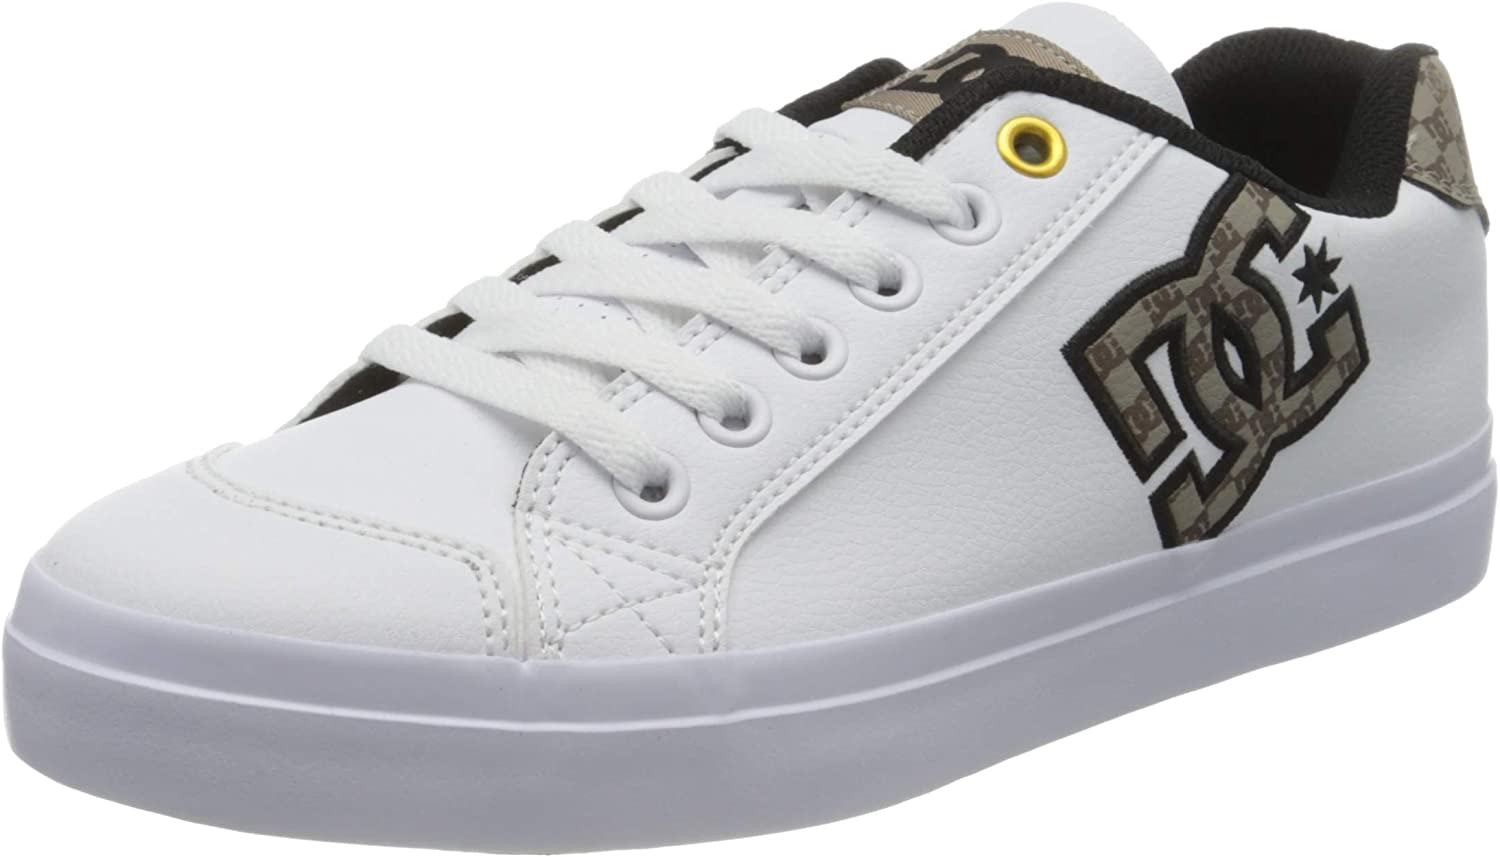 DC Max 57% OFF Max 80% OFF Shoes Women's Sneakers Low-Top